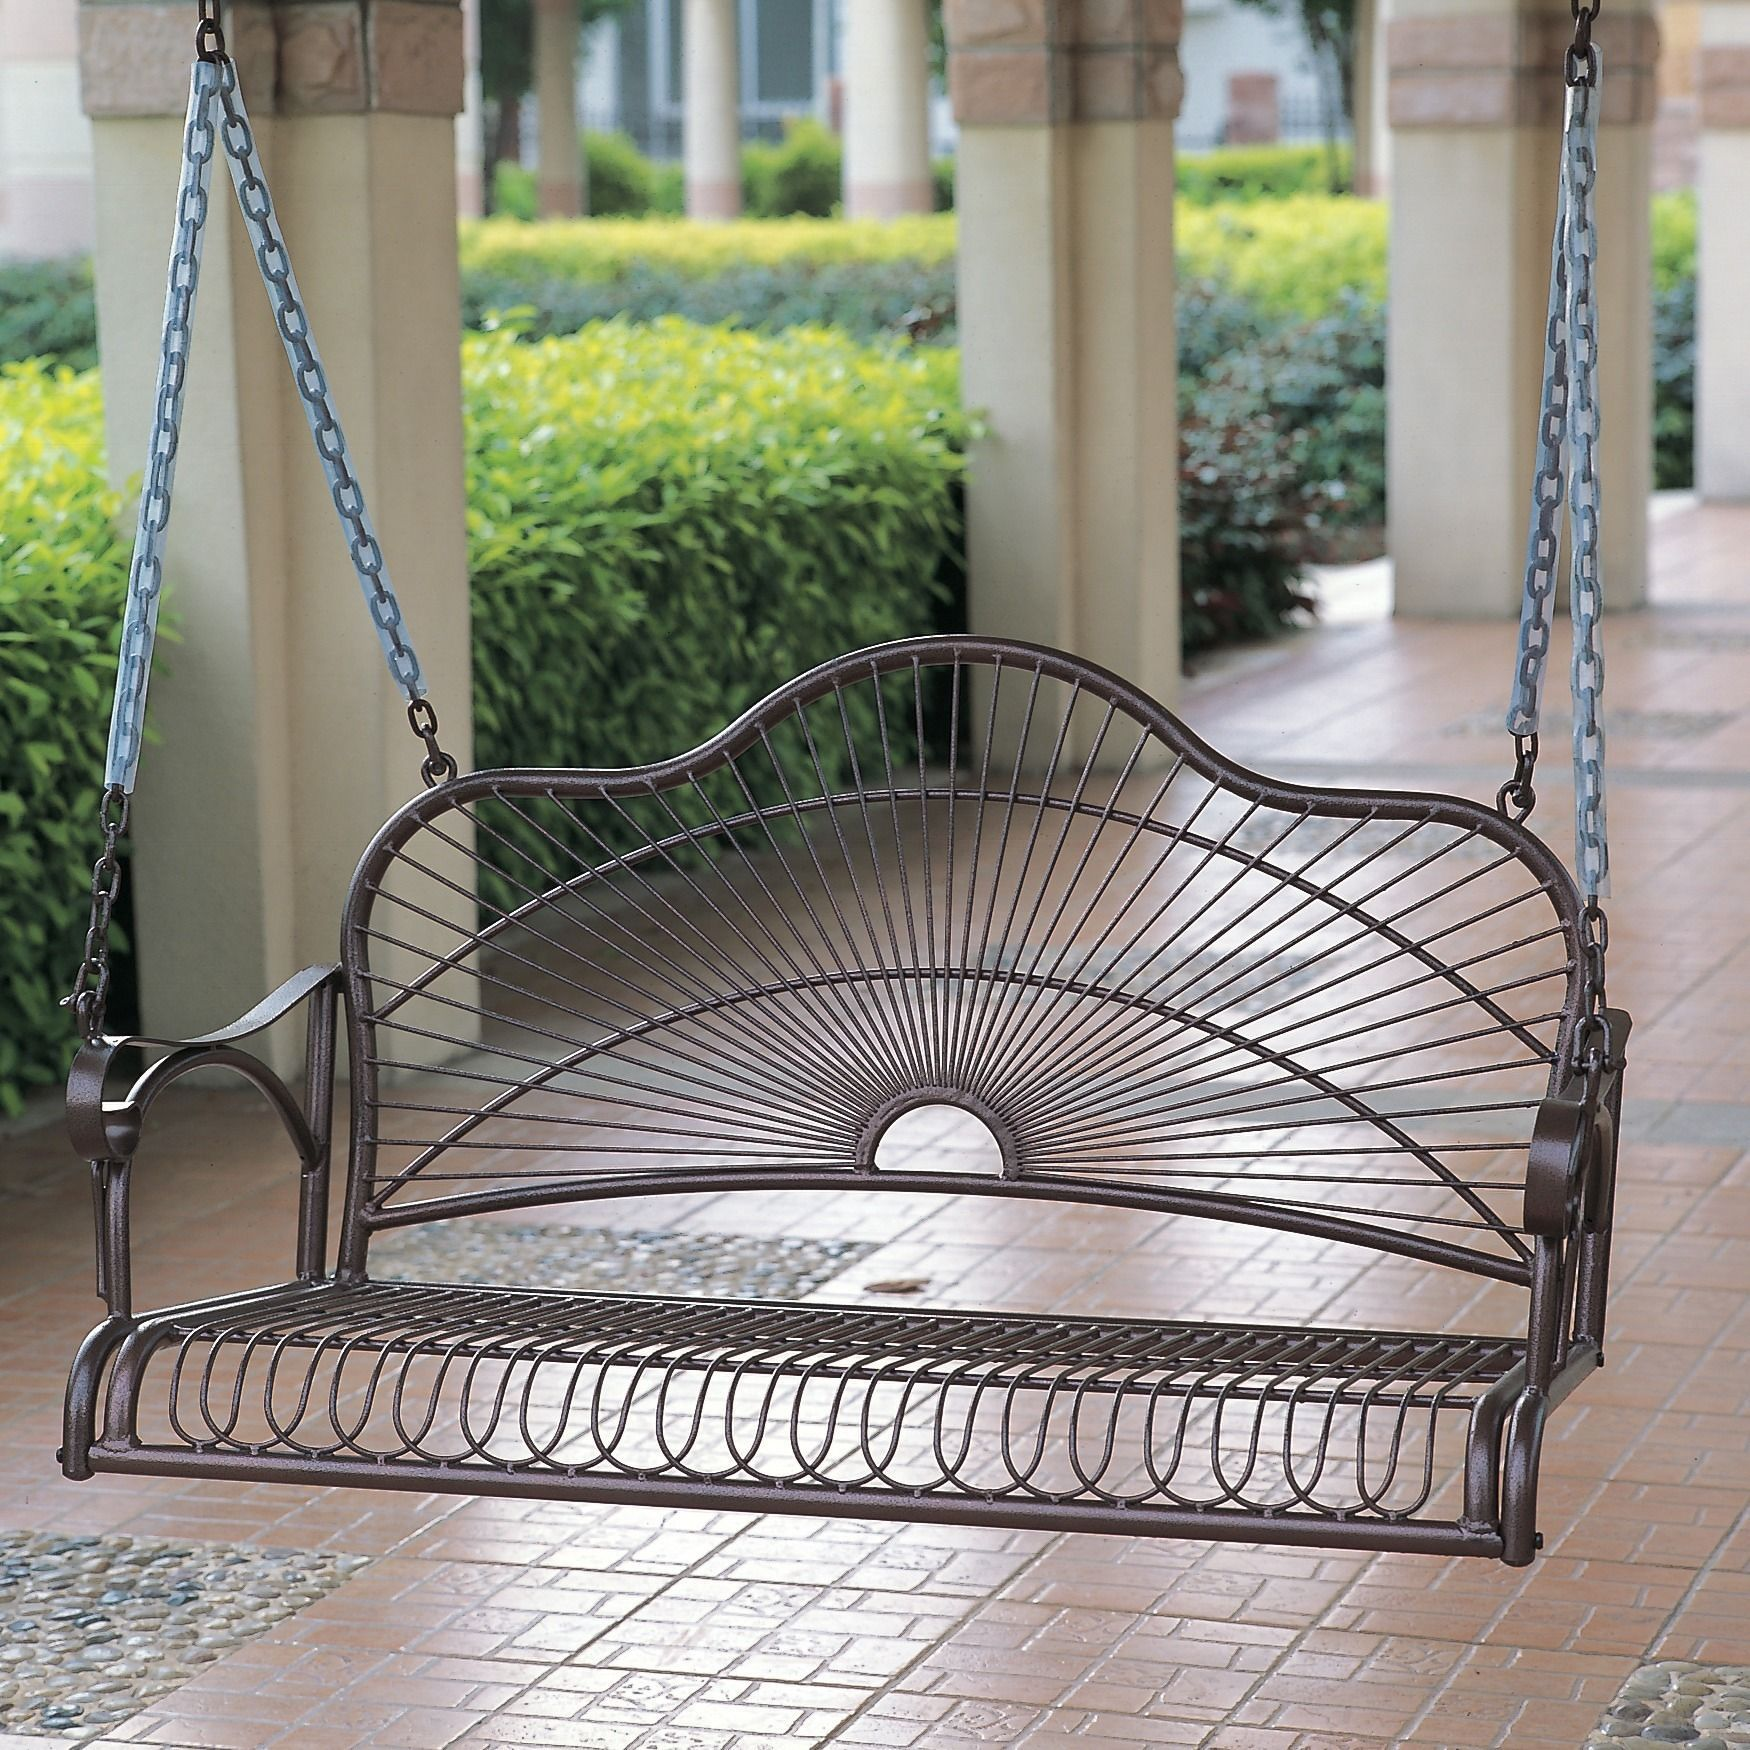 International Caravan Iron Sun Ray Porch Swing   Outdoor Living Showroom  Matches The Rocker, Again Itu0027d Need Some Cushions